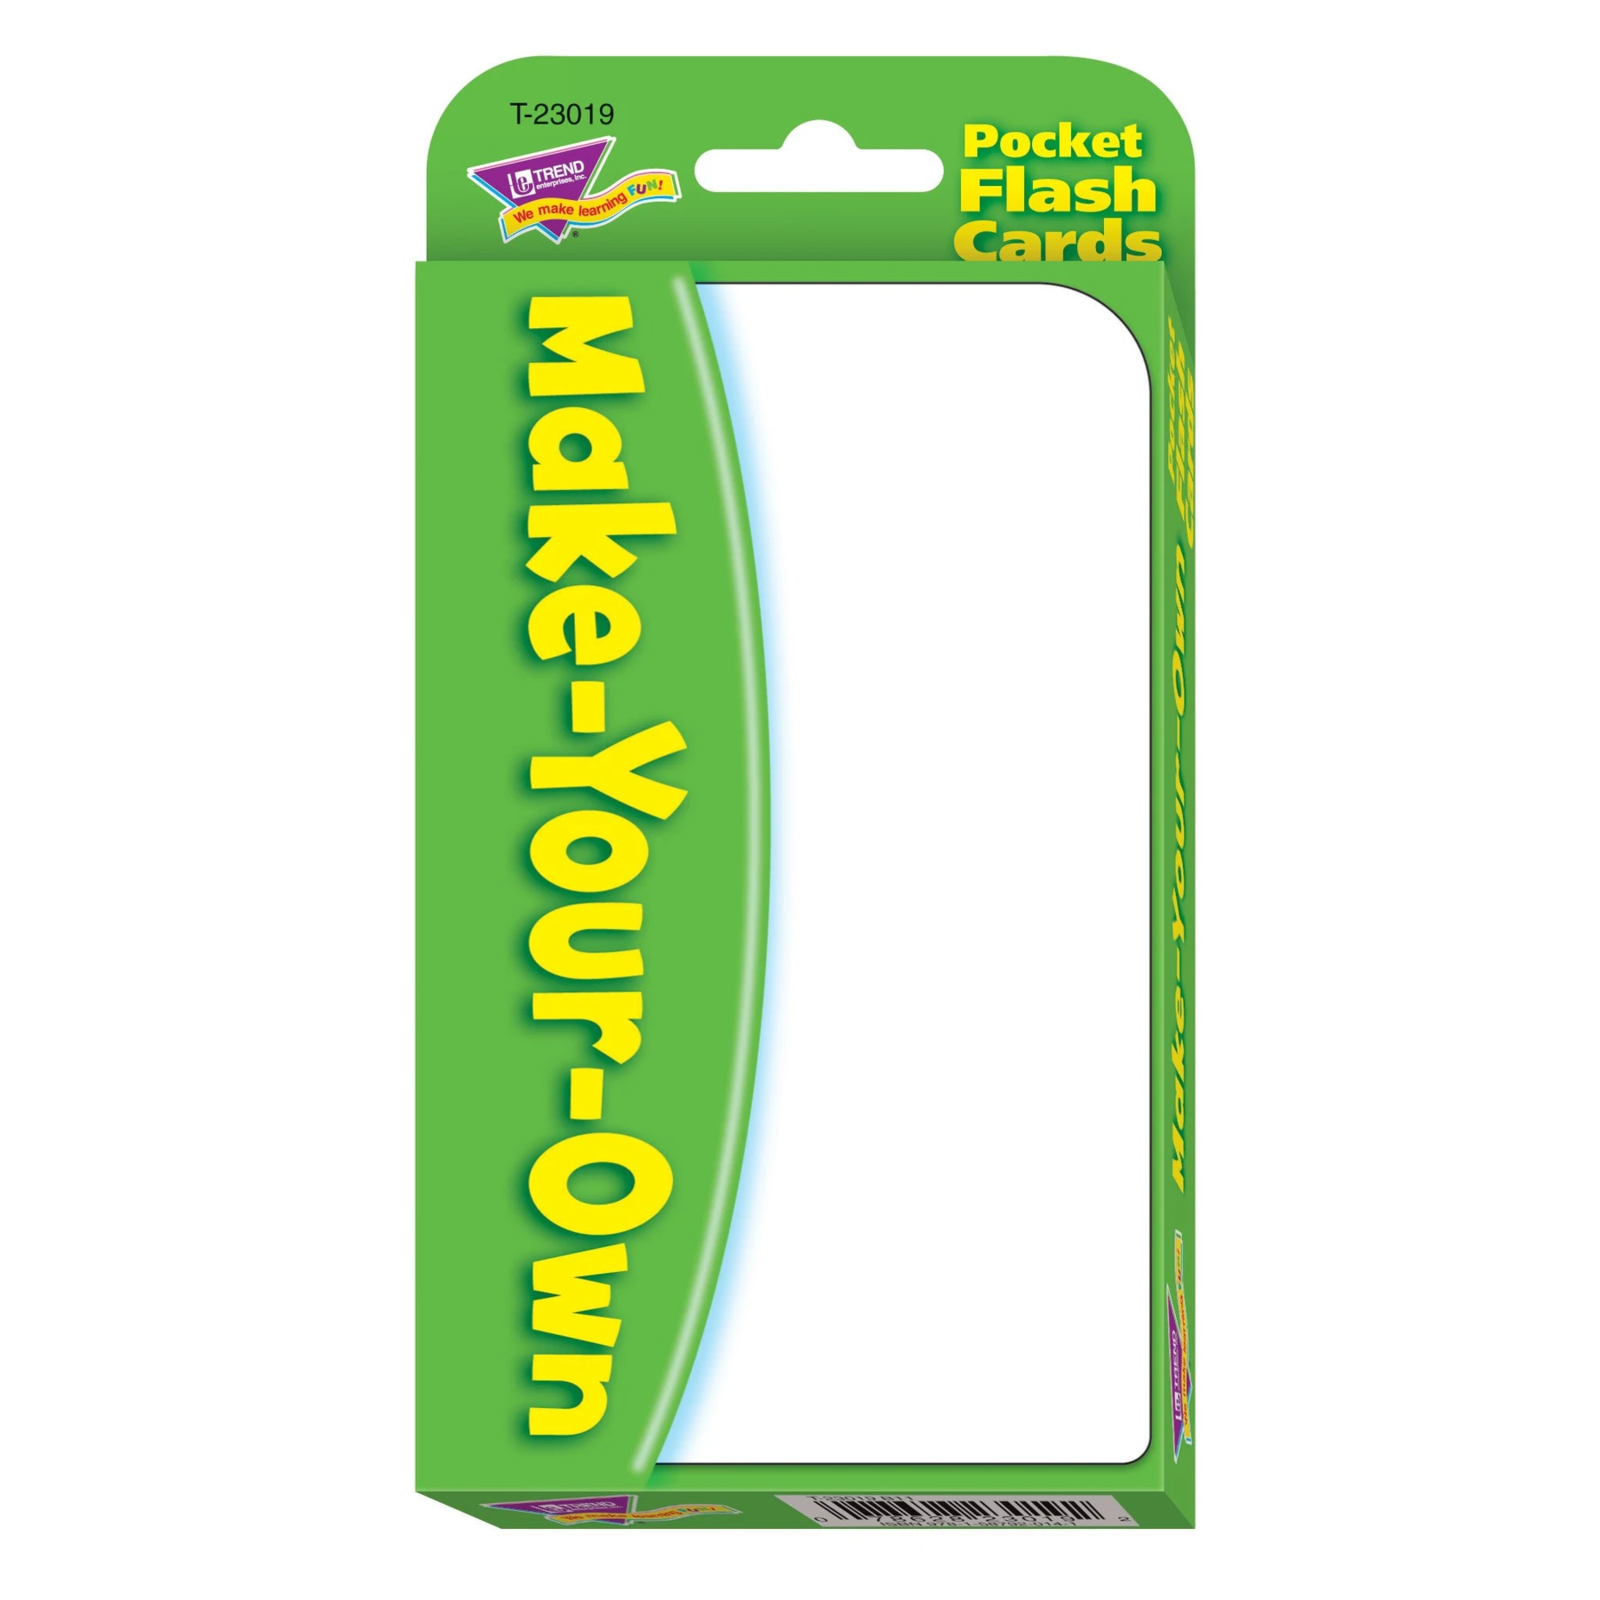 T23019 1 flash cards make your own package front 1800x1800